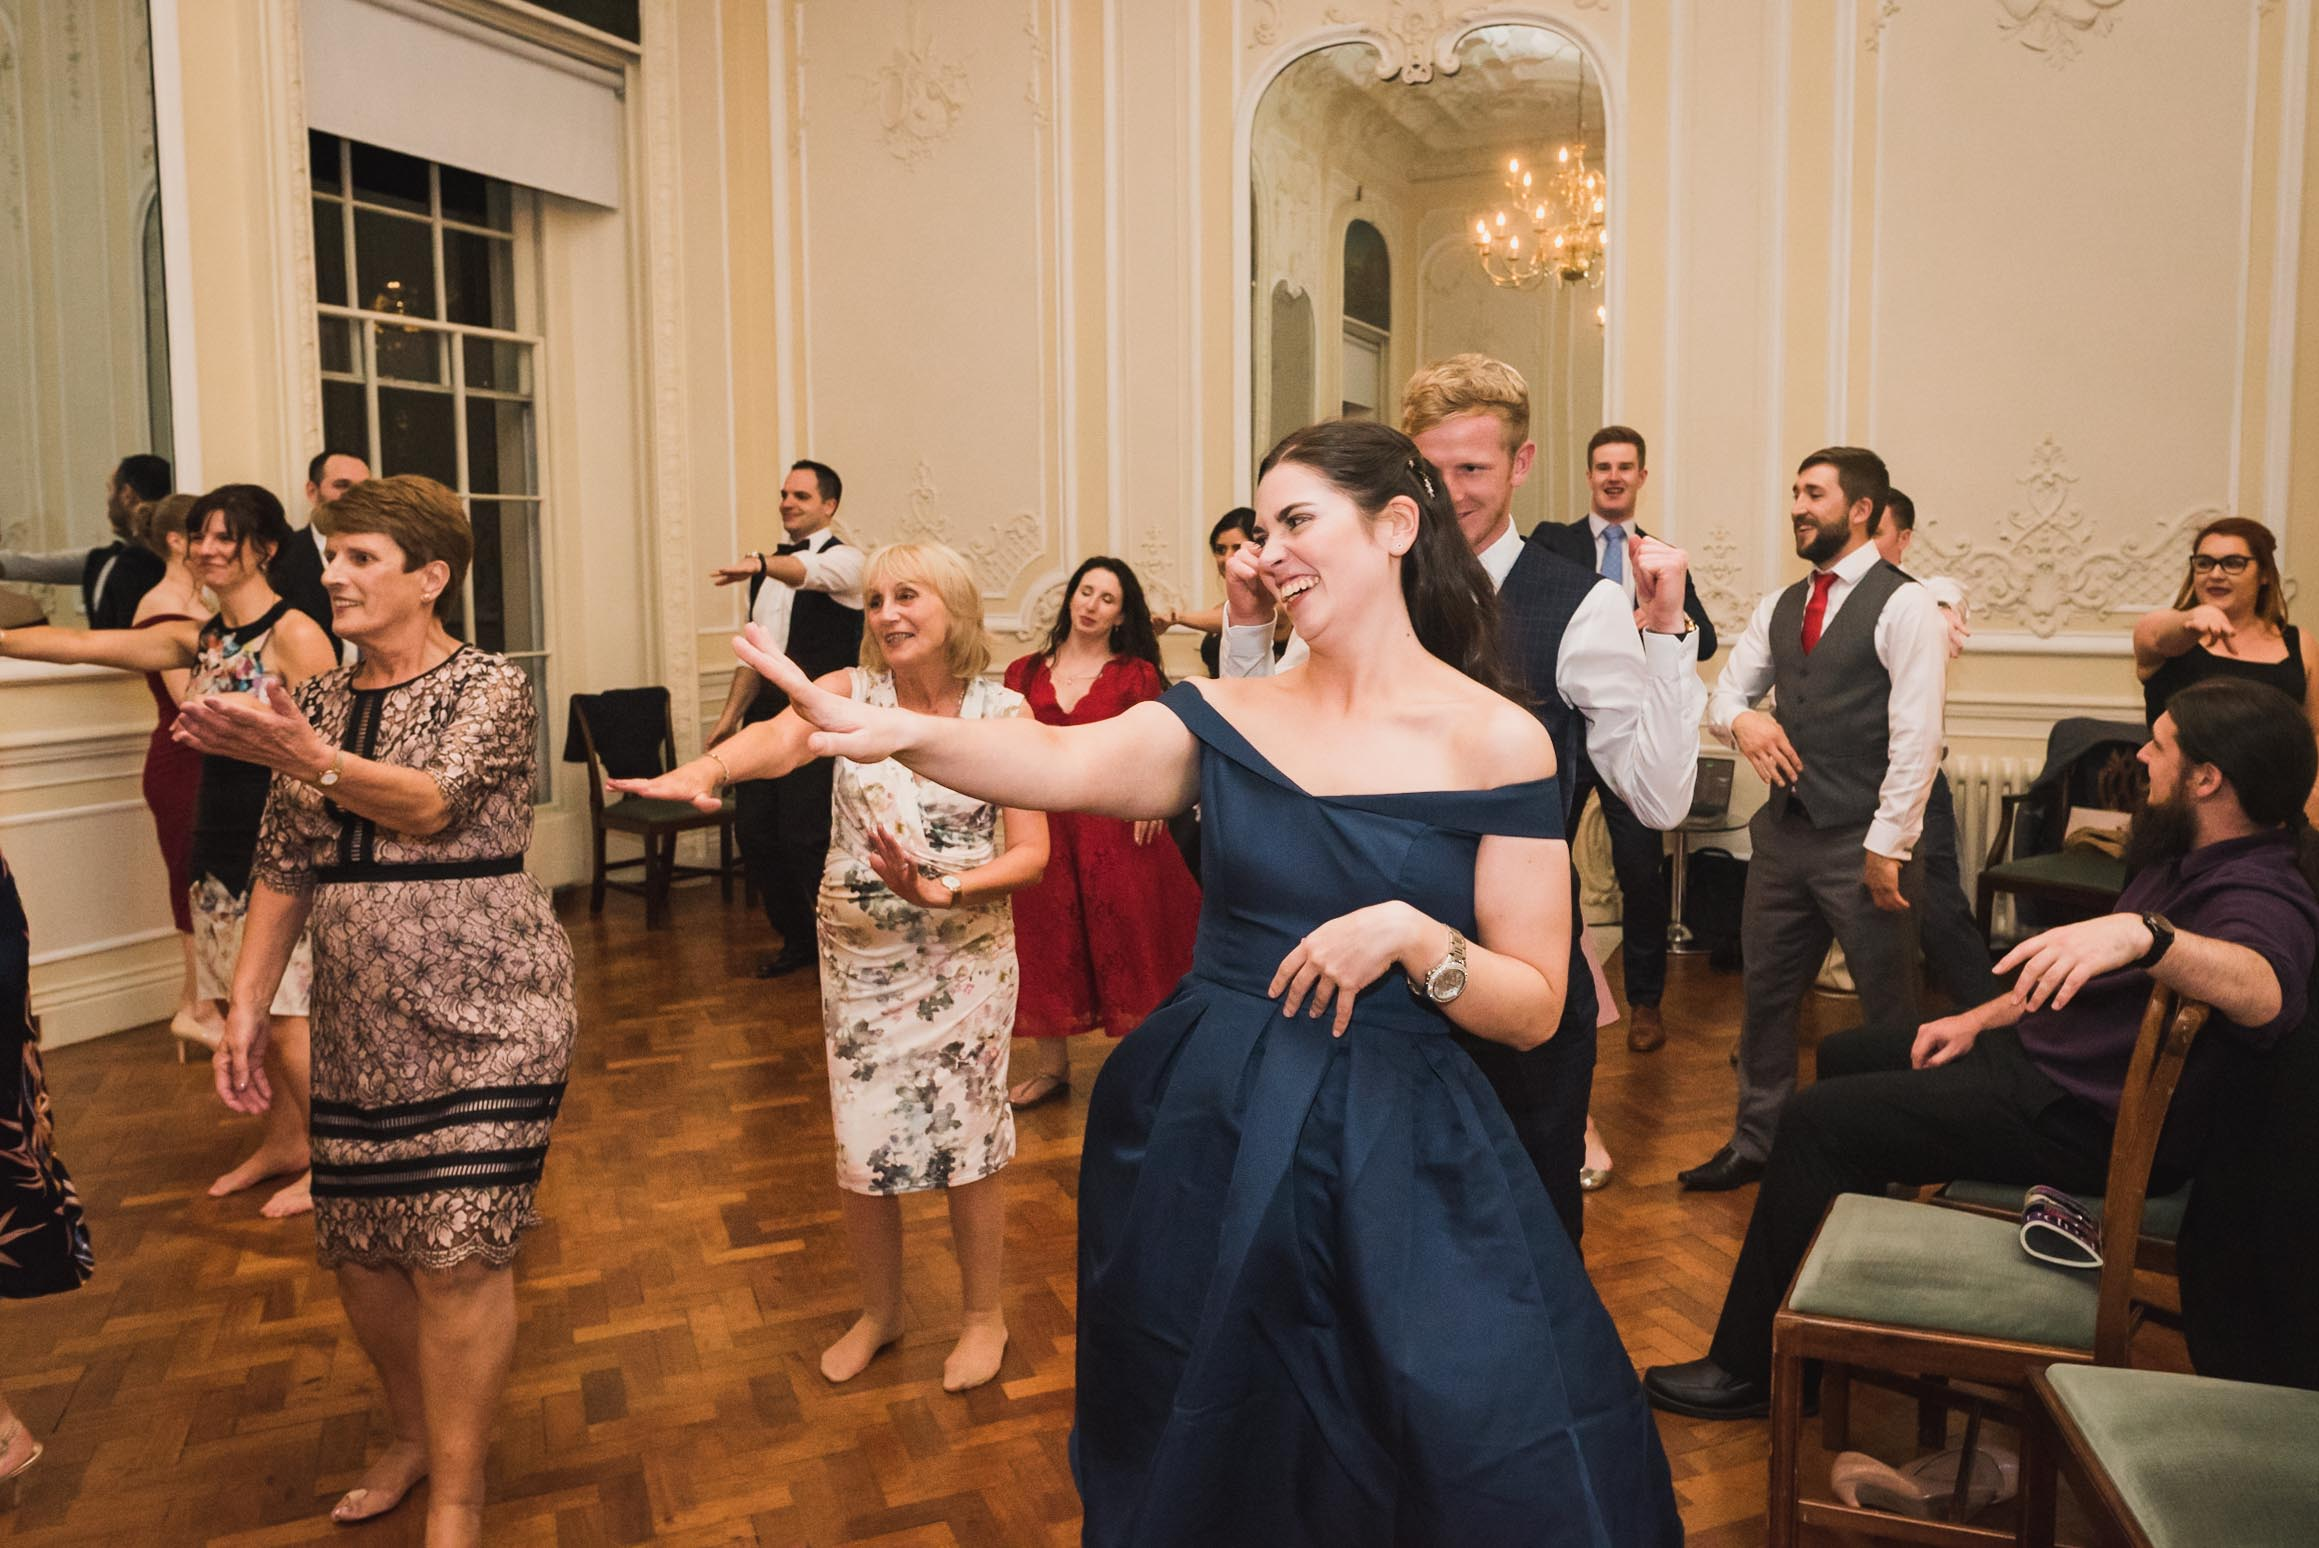 carine bea photography, guests having fun at wedding Carlton House Terrace London